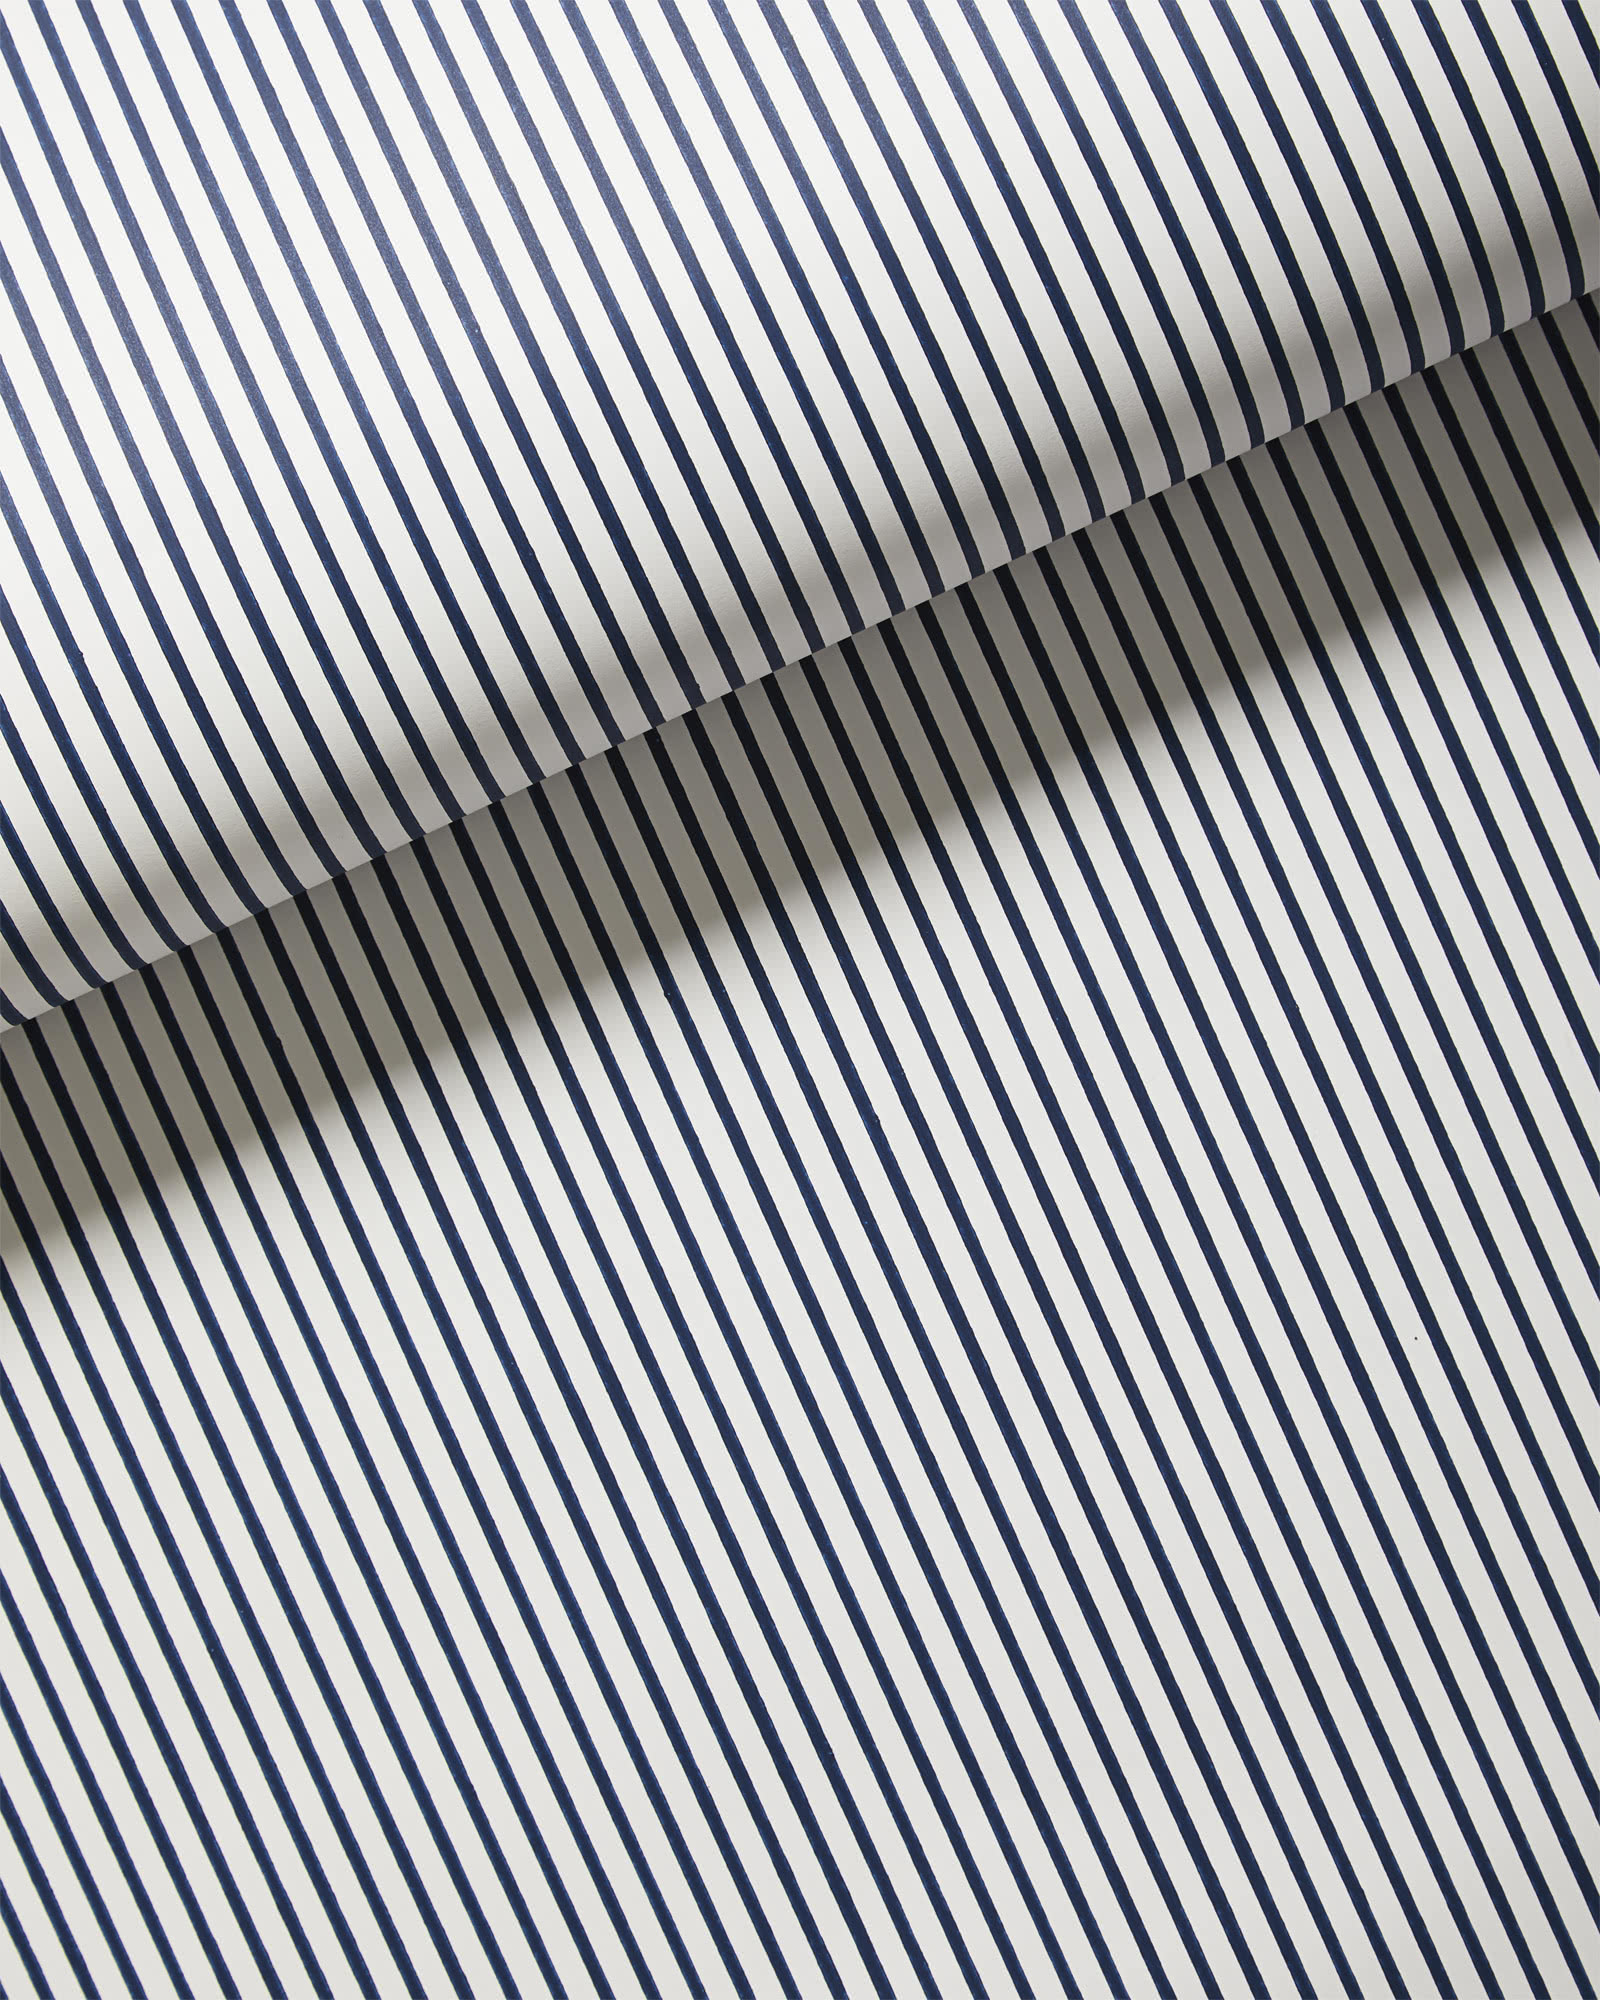 Oxford Stripe Wallpaper, Navy